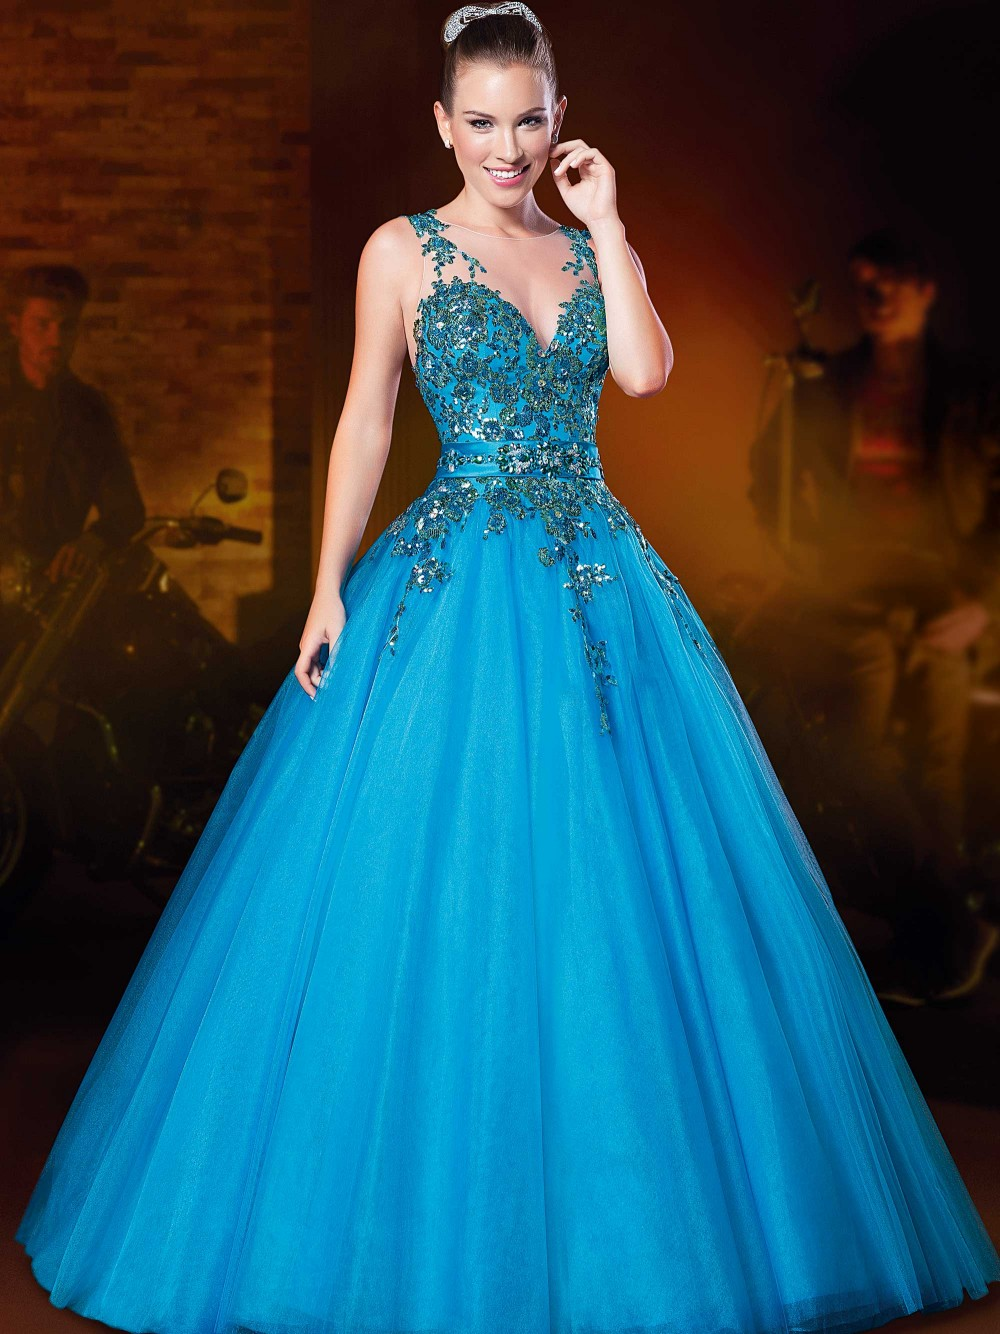 Ball Gown Kleider Gala Jurken See Through Back Lace Appliqued Vestidos De Noche Long Elegant Prom Mother Of The Bride Dress